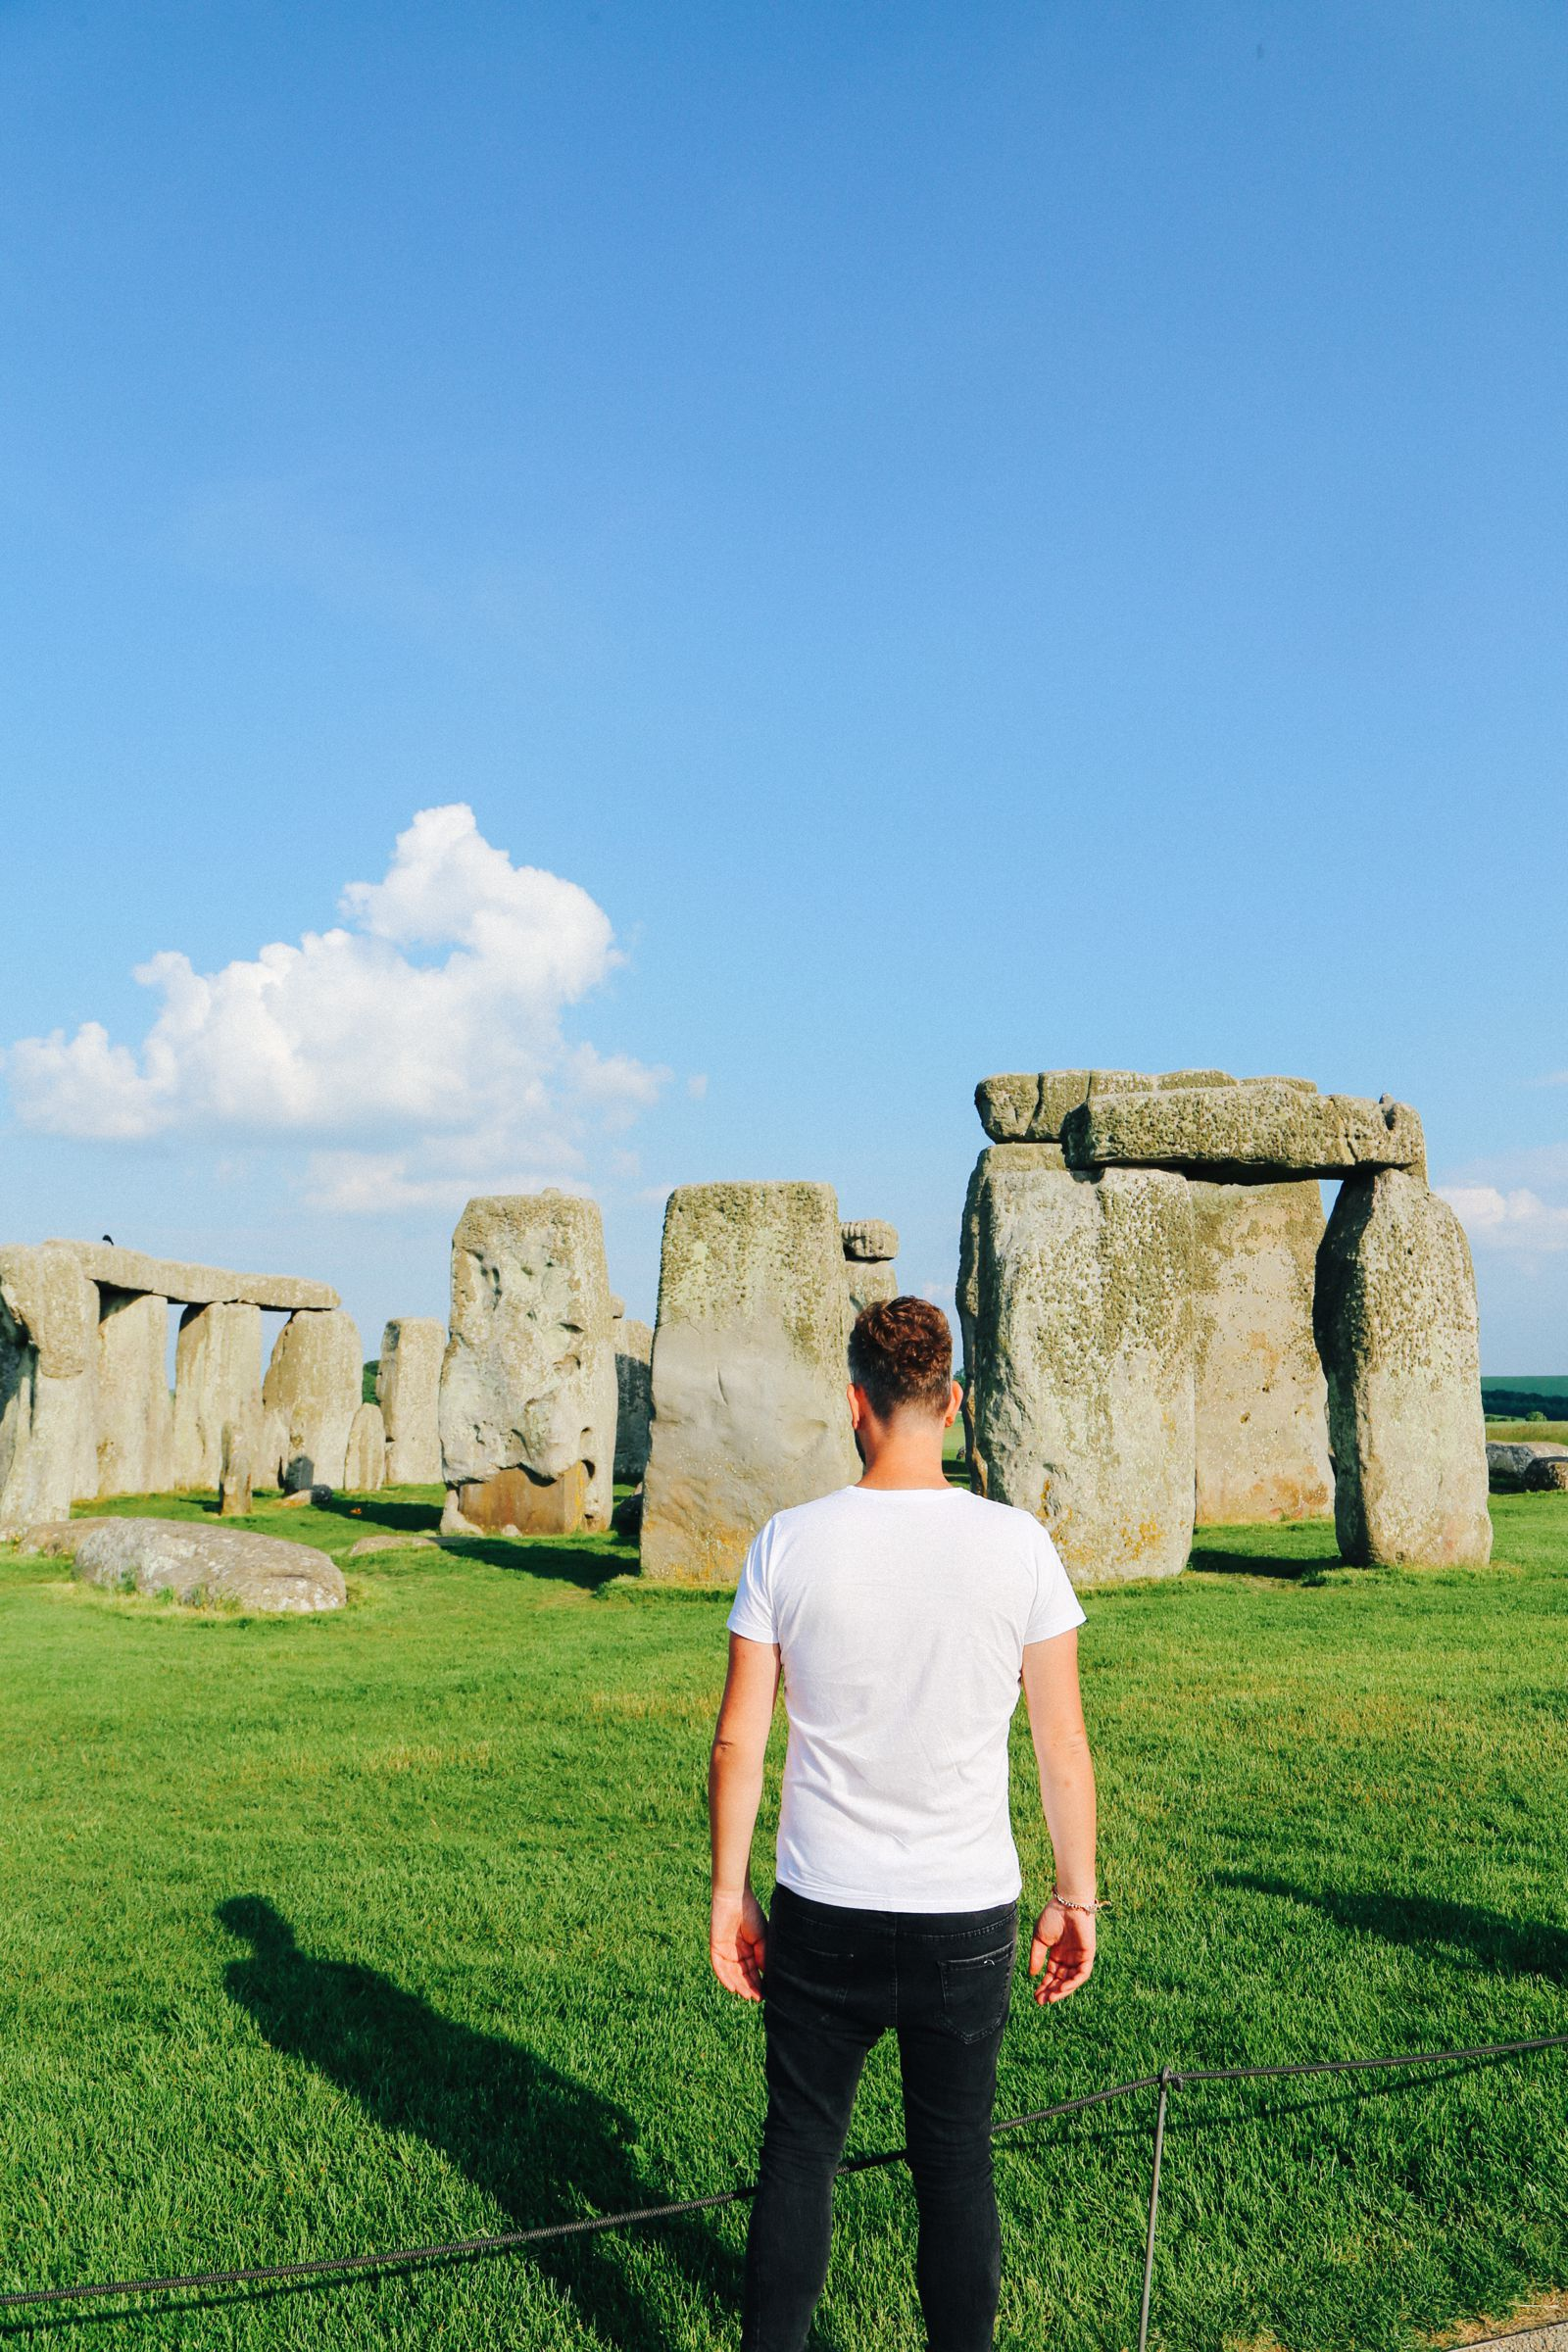 Stonehenge To Salisbury - The Start Of Our Great English Road Trip! (11)